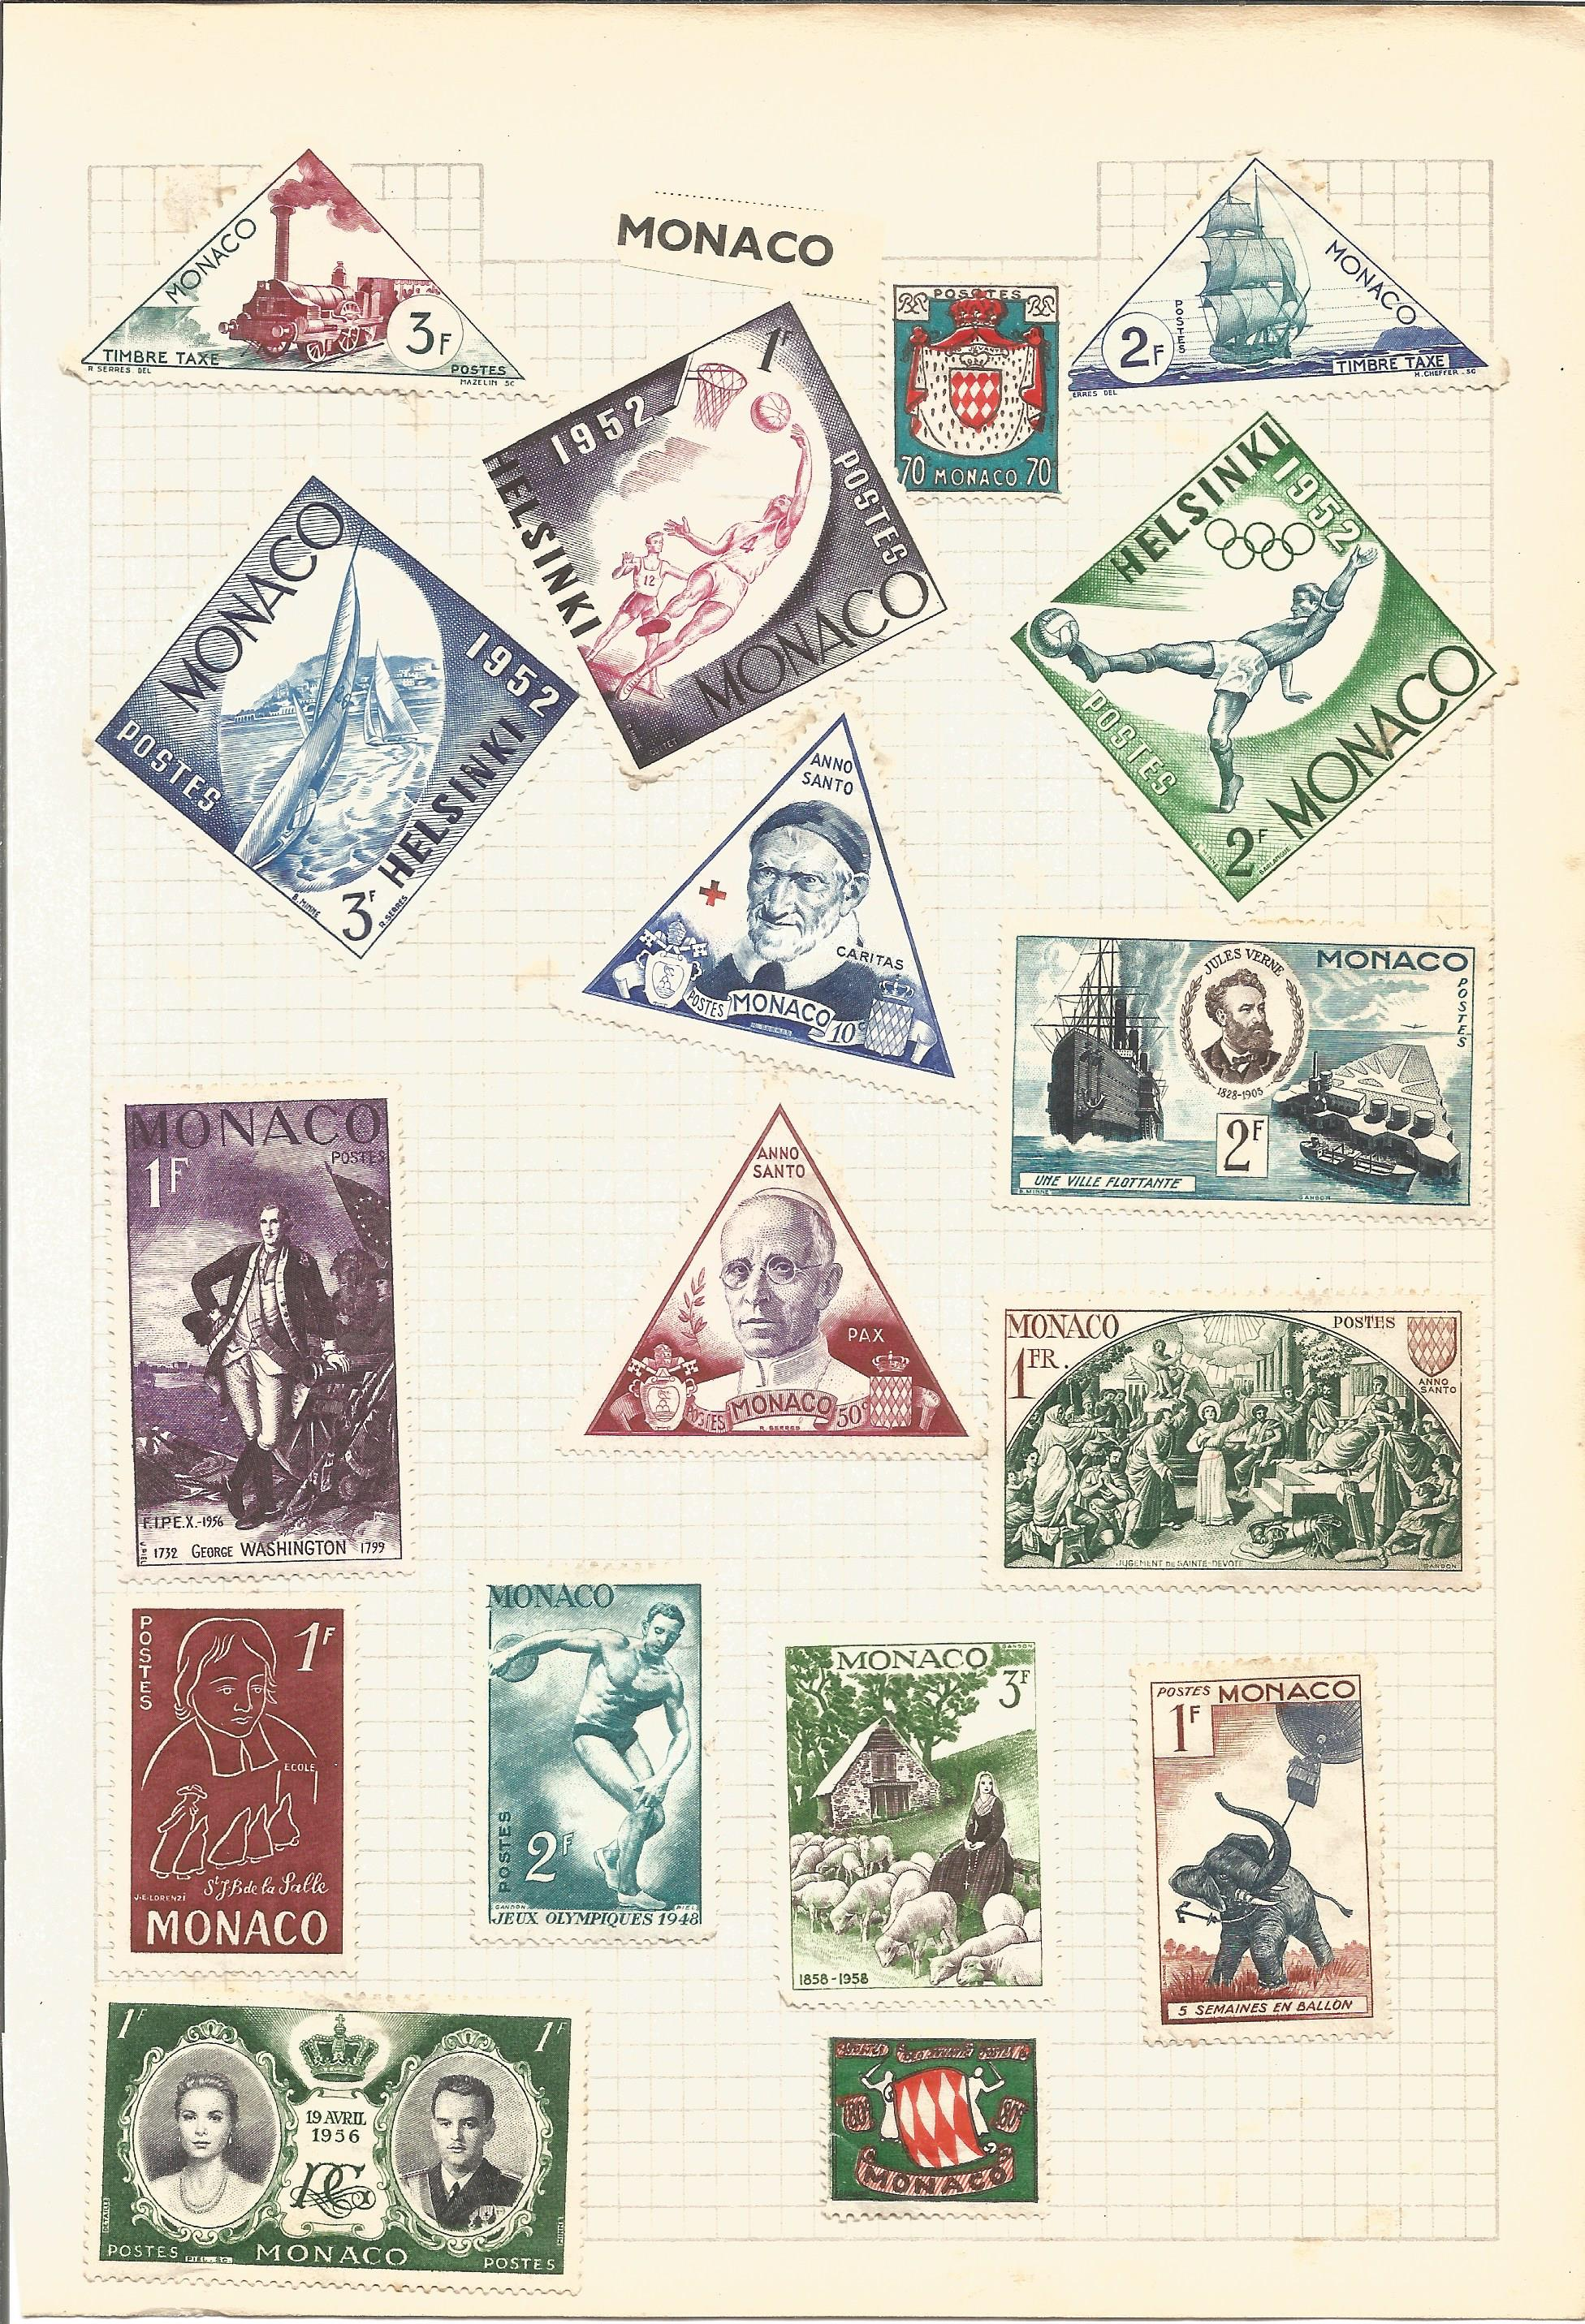 European stamp collection on 4 pages. Includes Monaco, Luxembourg and San Marino. Good condition. We